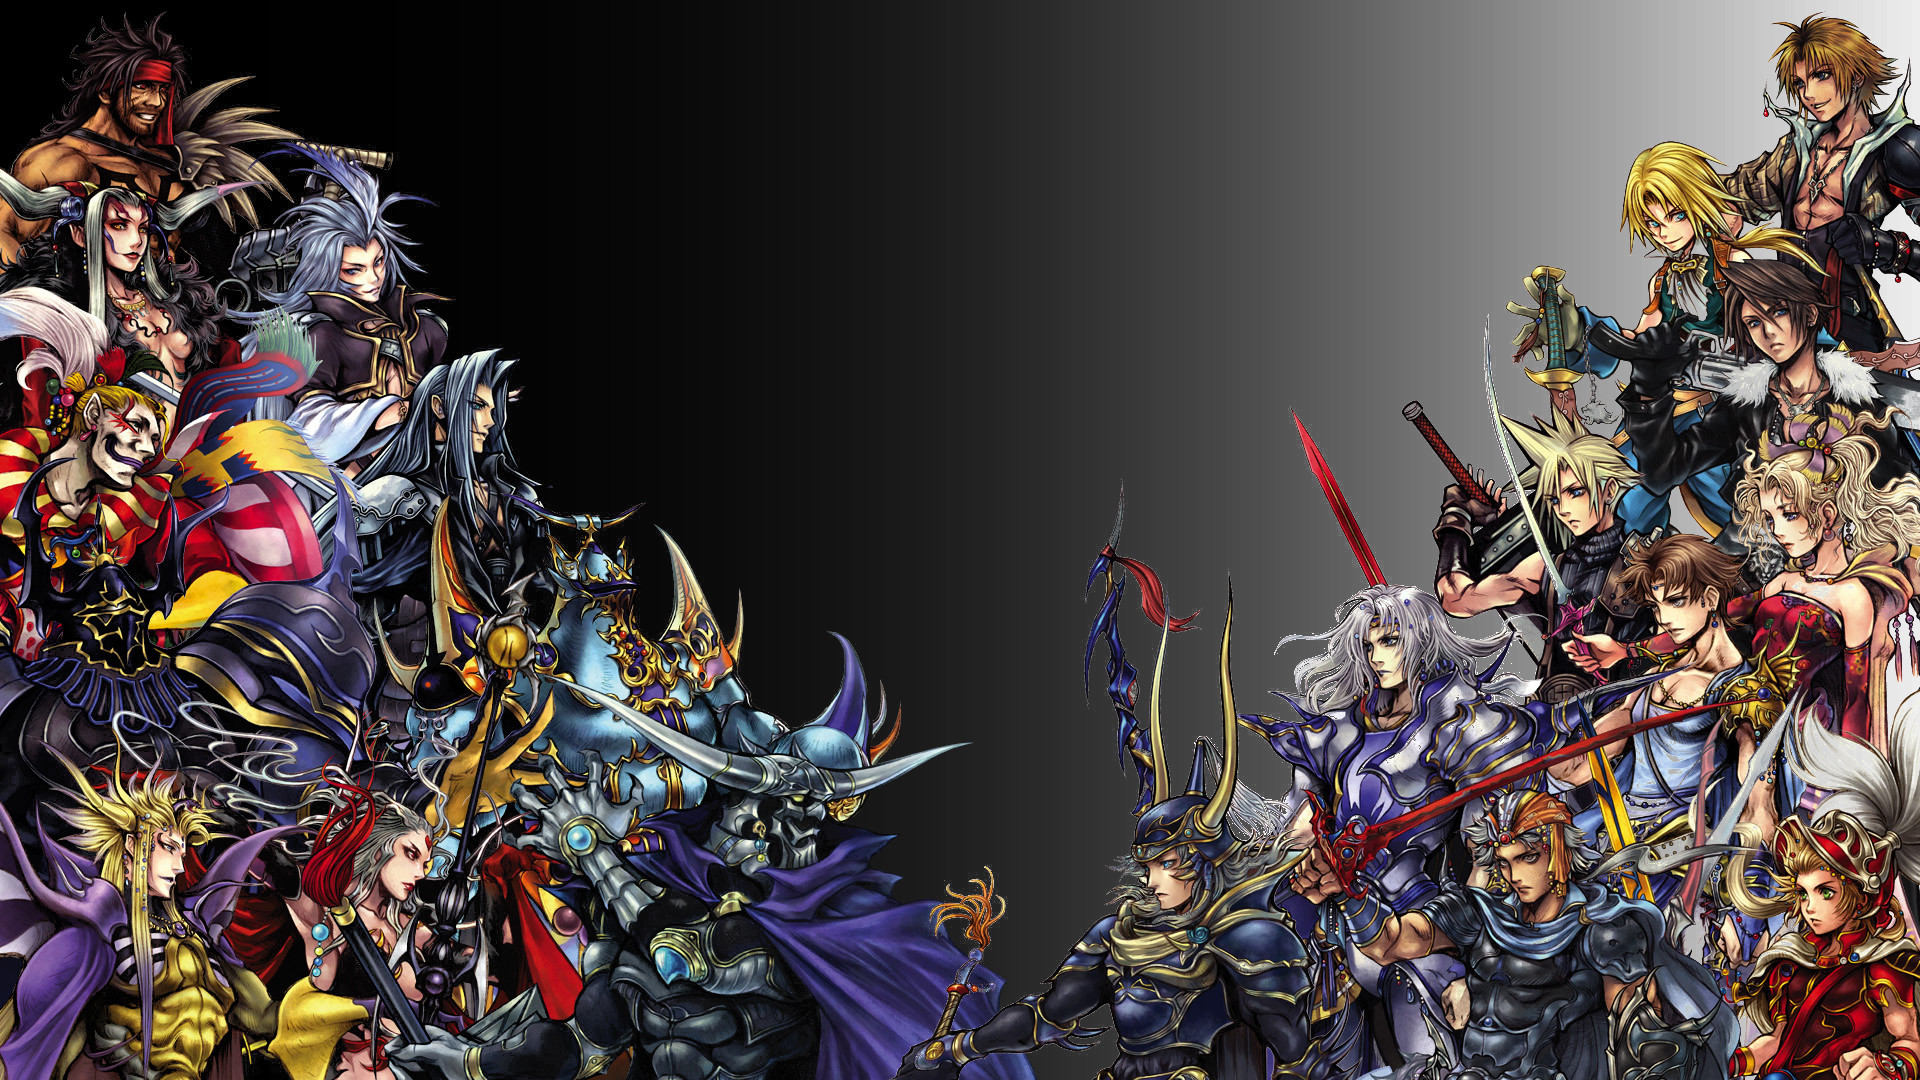 Final Fantasy Hd Wallpapers 85 Pictures